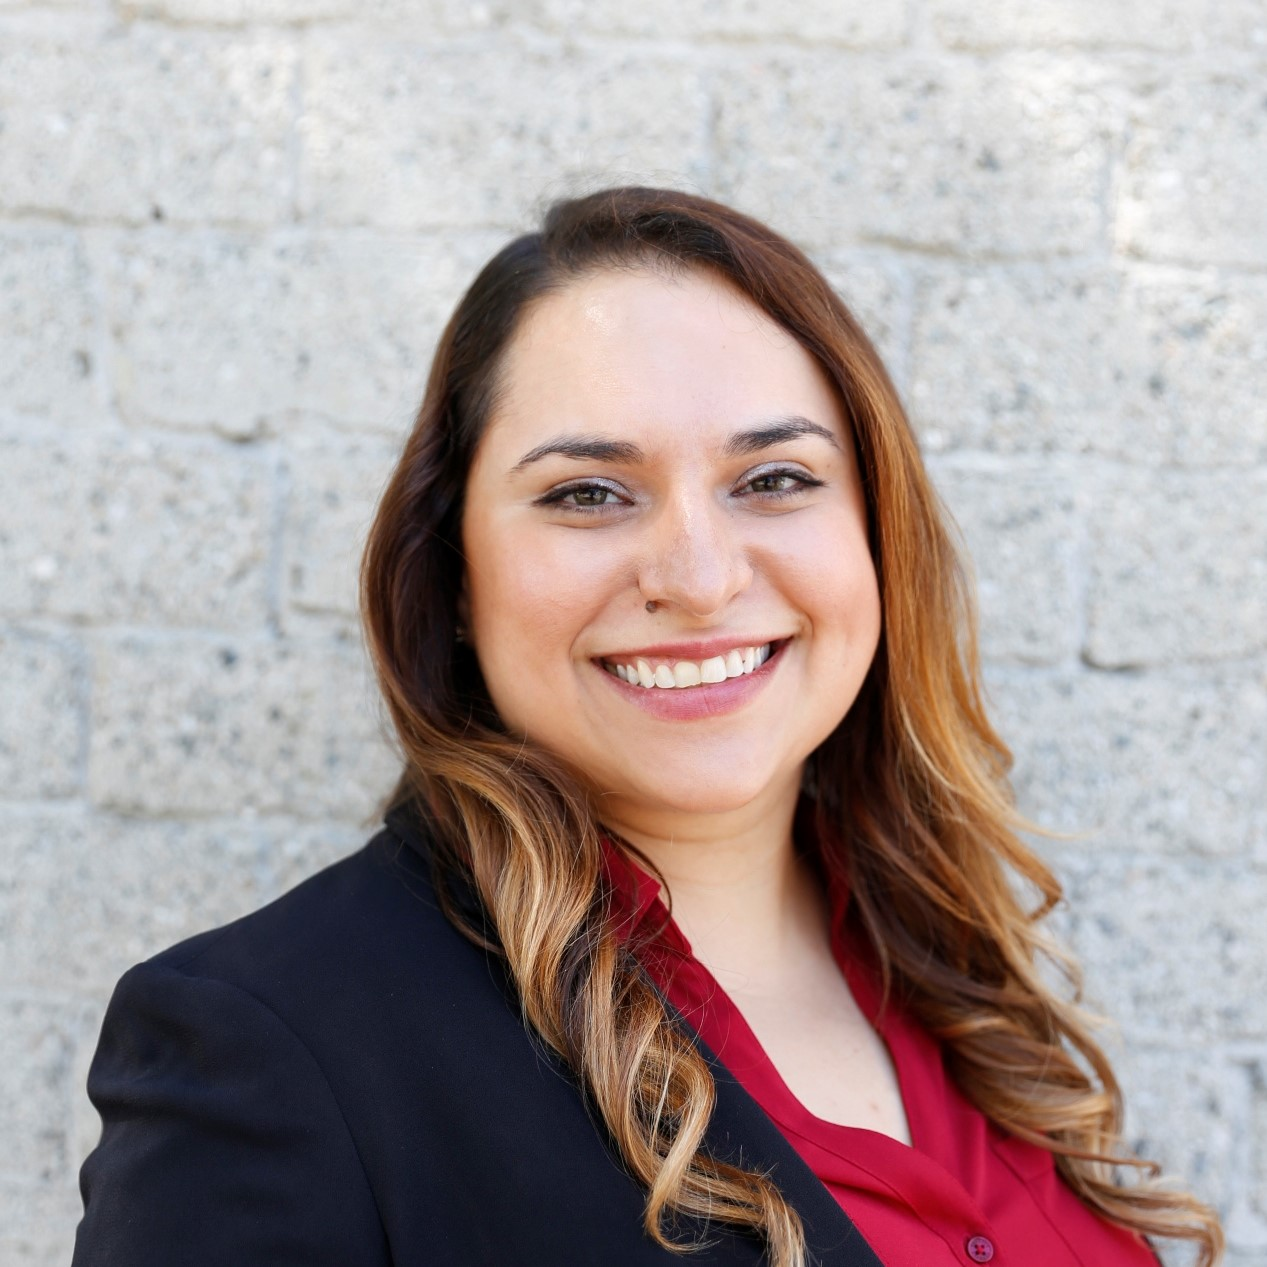 Aria Ashrafzadeh - Aria grew up in Michigan and went to high school in Texas; she graduated from Claremont McKenna College with a B.A. in Psychology and concentrations in Biochemistry and Philosophy. After college, she worked in the INGO sphere in South Asia and the Middle East, focusing on projects that increase education and health access in rural communities. She then moved to Los Angeles and worked in the food & beverage industry while becoming a de-facto restaurant guide for all her friends. In her free time, she enjoys picking the brains of people with NYC restaurant knowledge, discovering hole-in-the-walls (#gradstudentbudget), and staying out for shows past her bedtime.